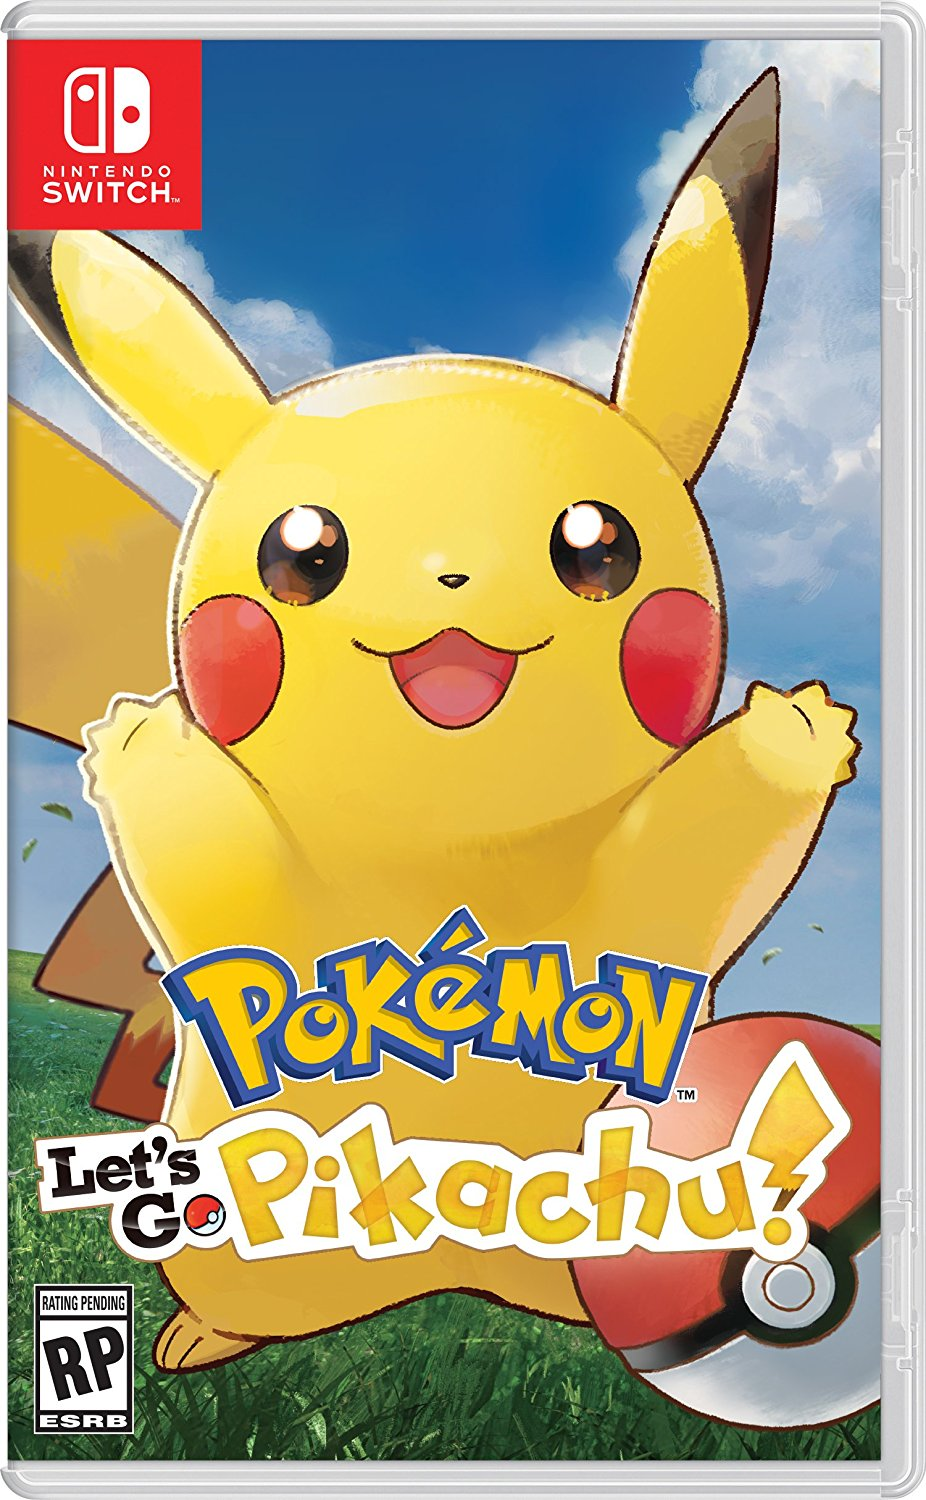 Pokémon Let's Go Pikachu! - Switch